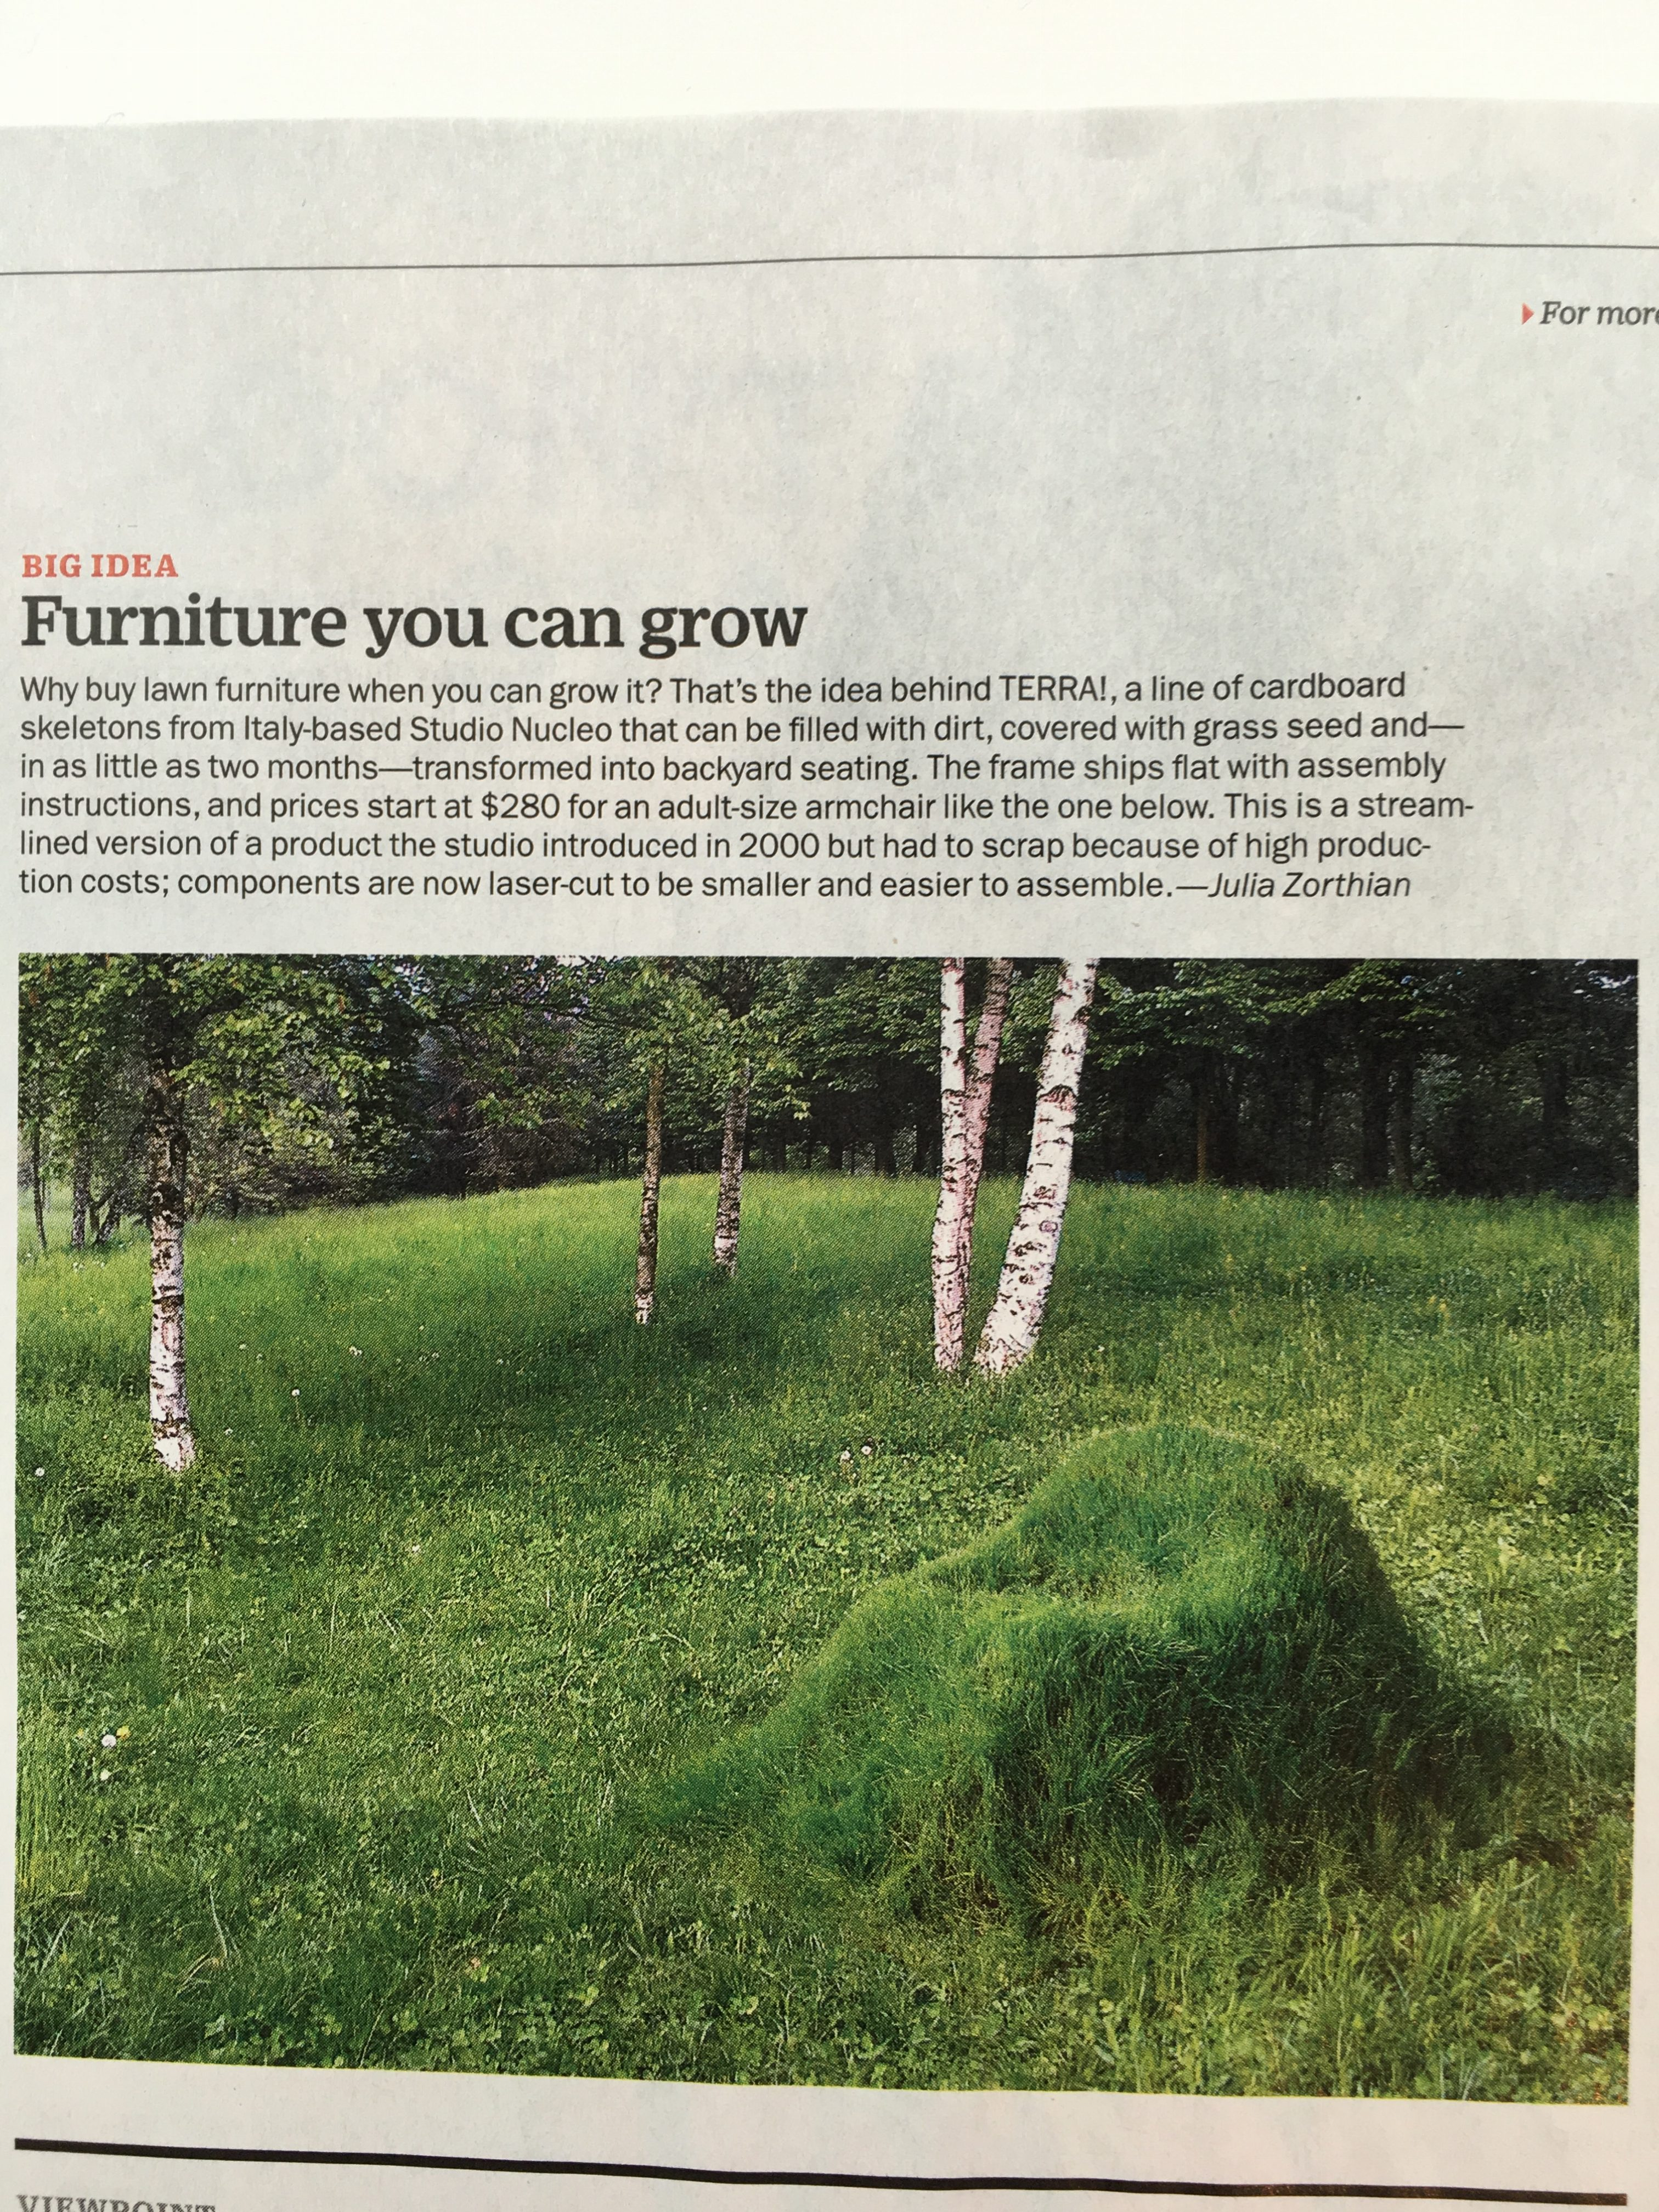 """TIME for TERRA """"Furniture you can grow"""" patriciafindlay"""